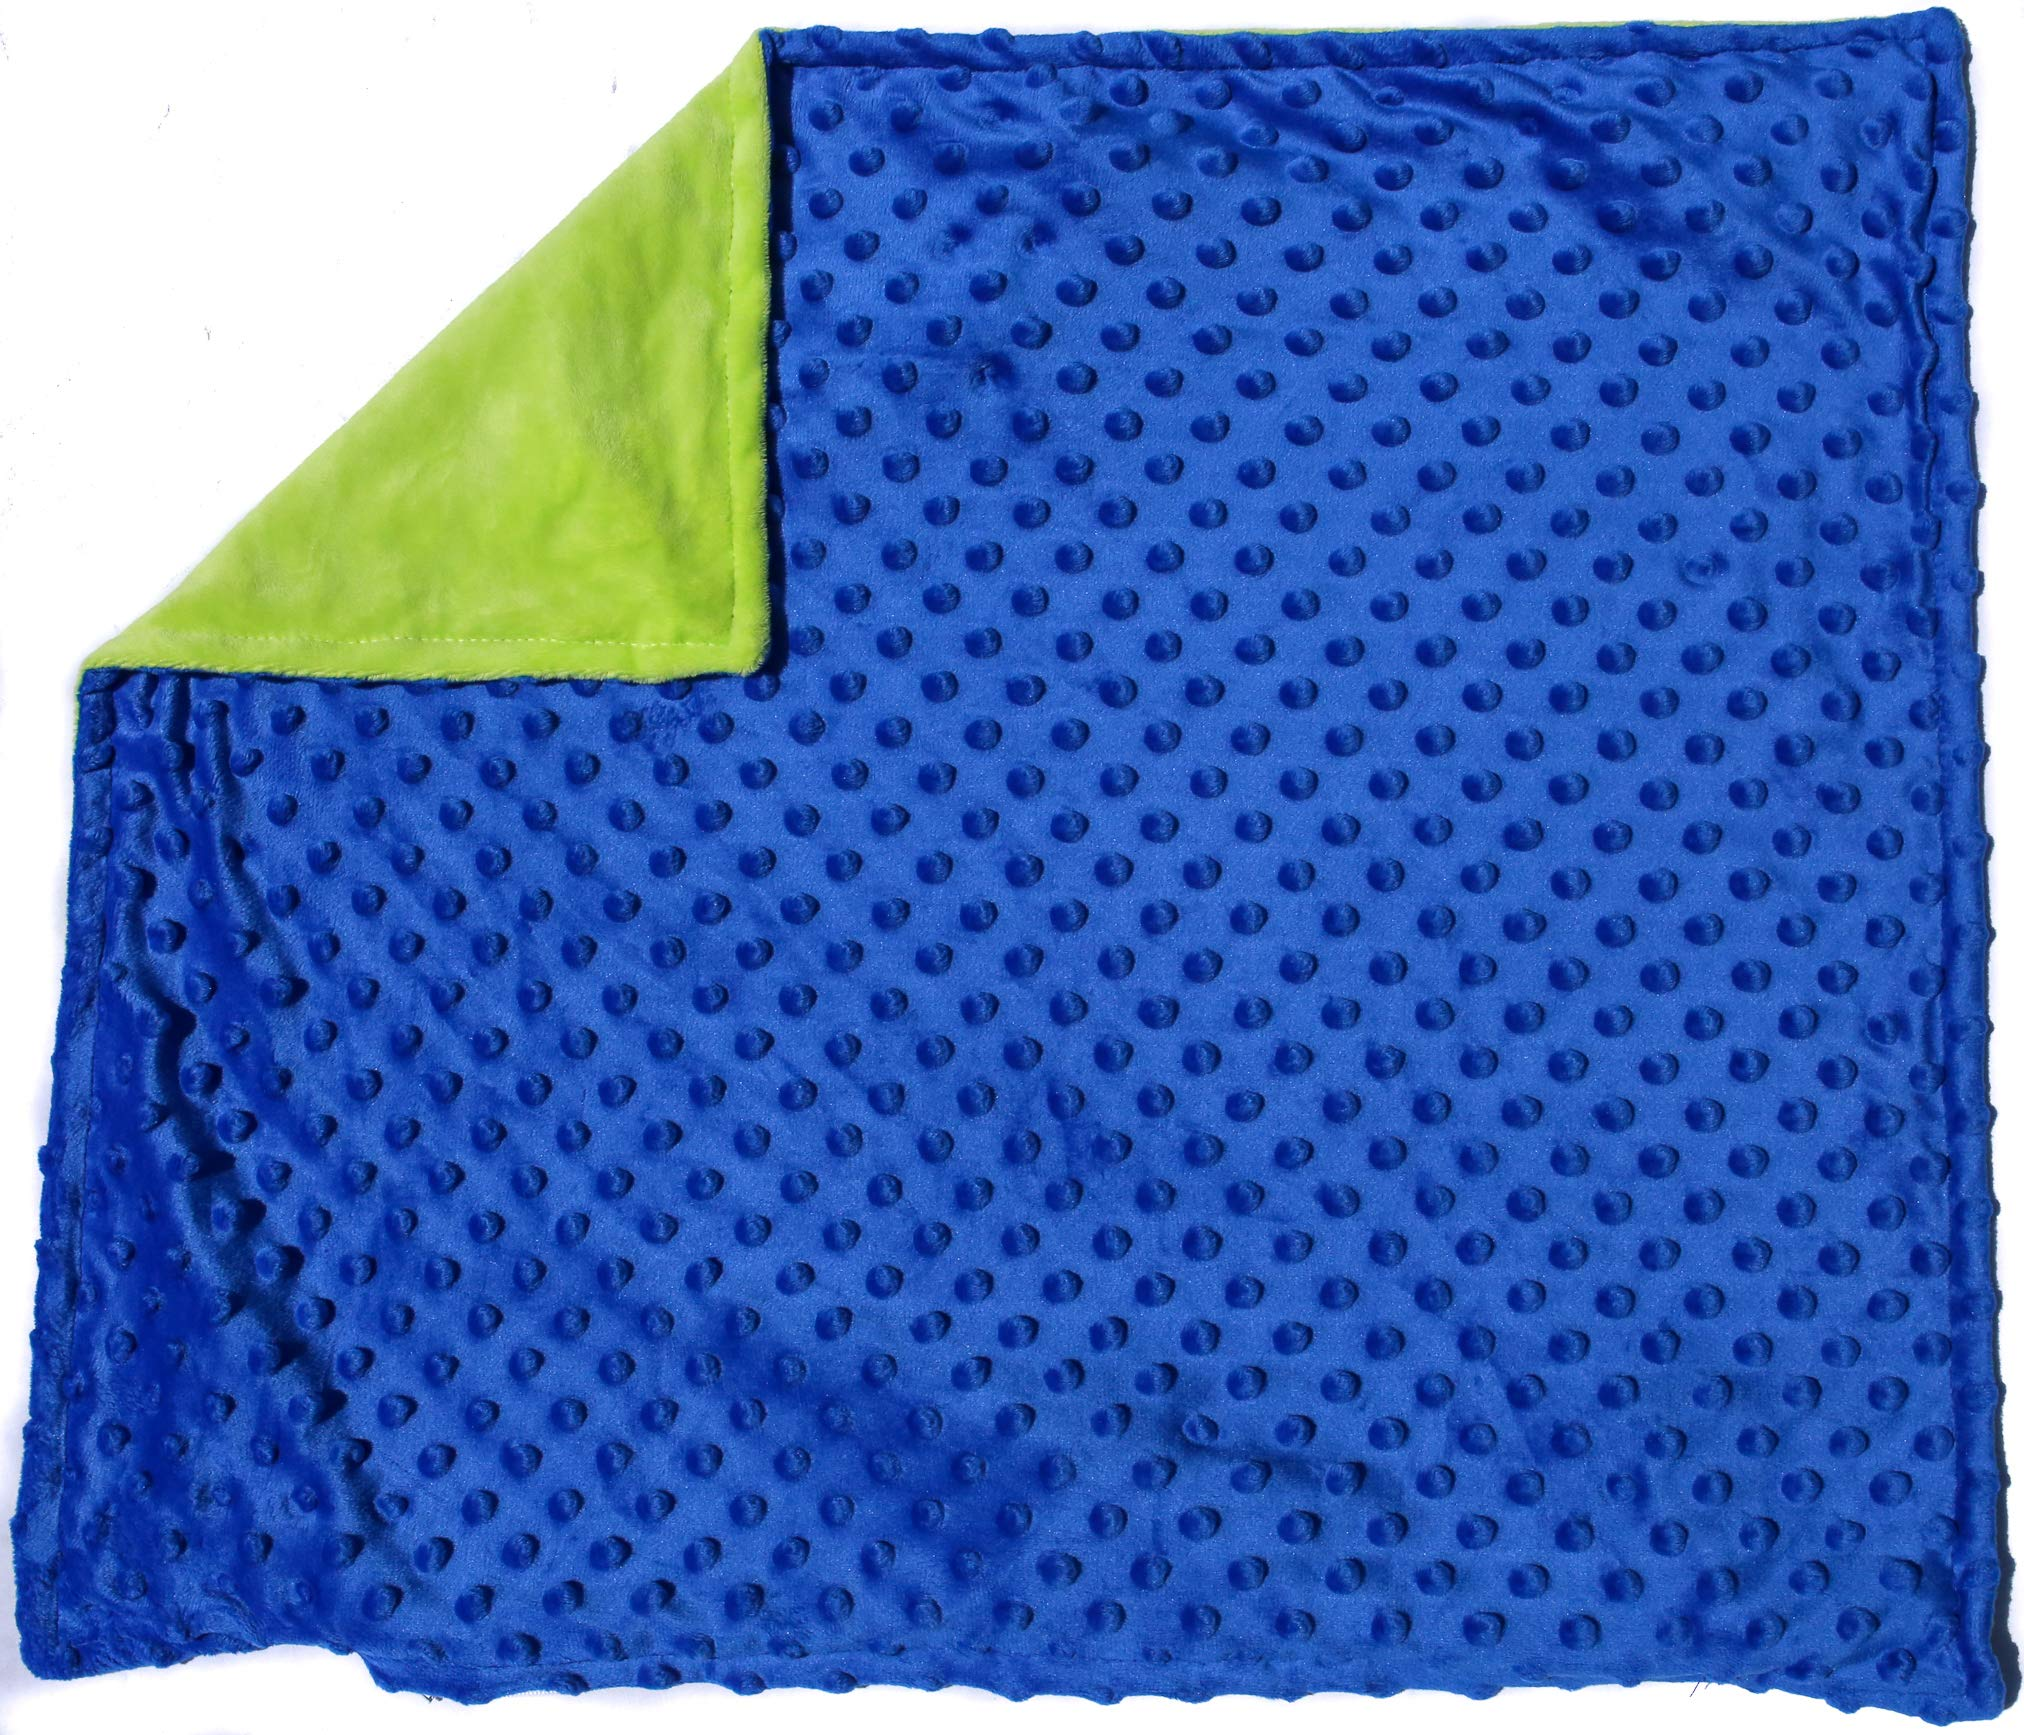 Sensory Weighted Lap Pad for Kids - Includes Cover - Relaxes and Relieves Stress and Anxiety Symptoms Great for Children with Autism, Sensory Processing Disorder, ADHD - Borbona